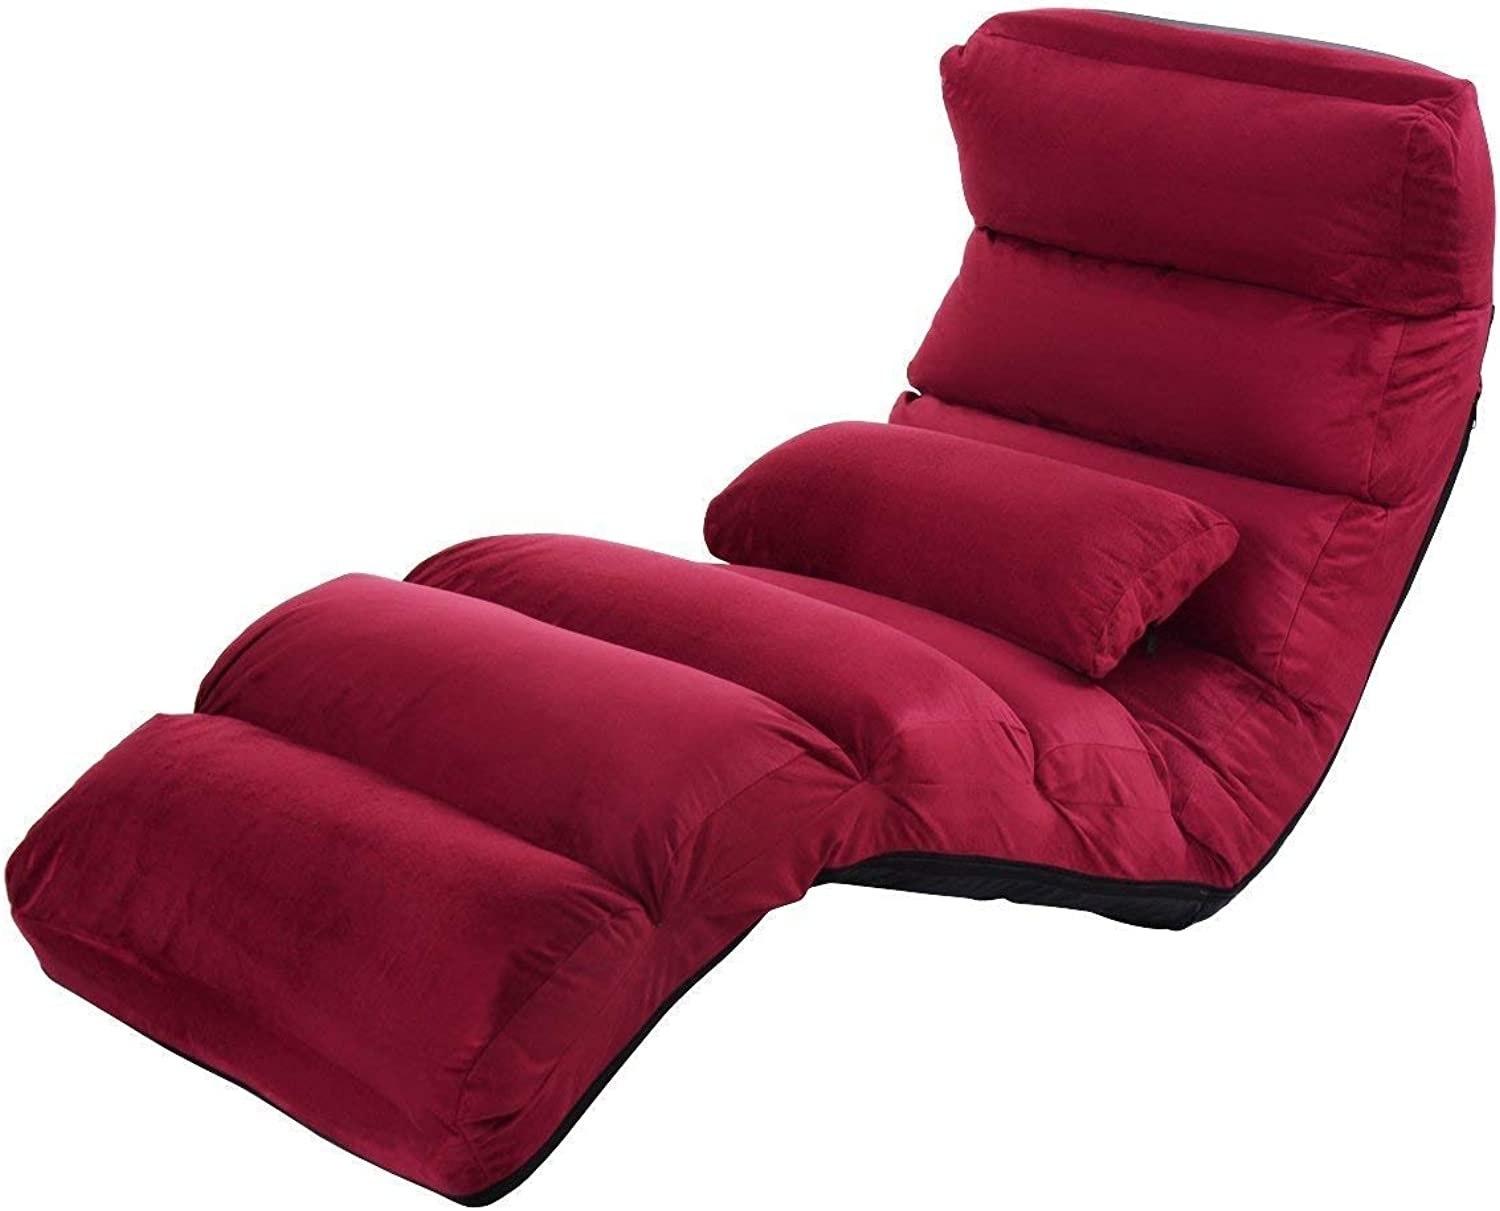 Giantex Folding Lazy Sofa Chair Stylish Sofa Couch Beds Lounge Chair W Pillow (Burgundy)